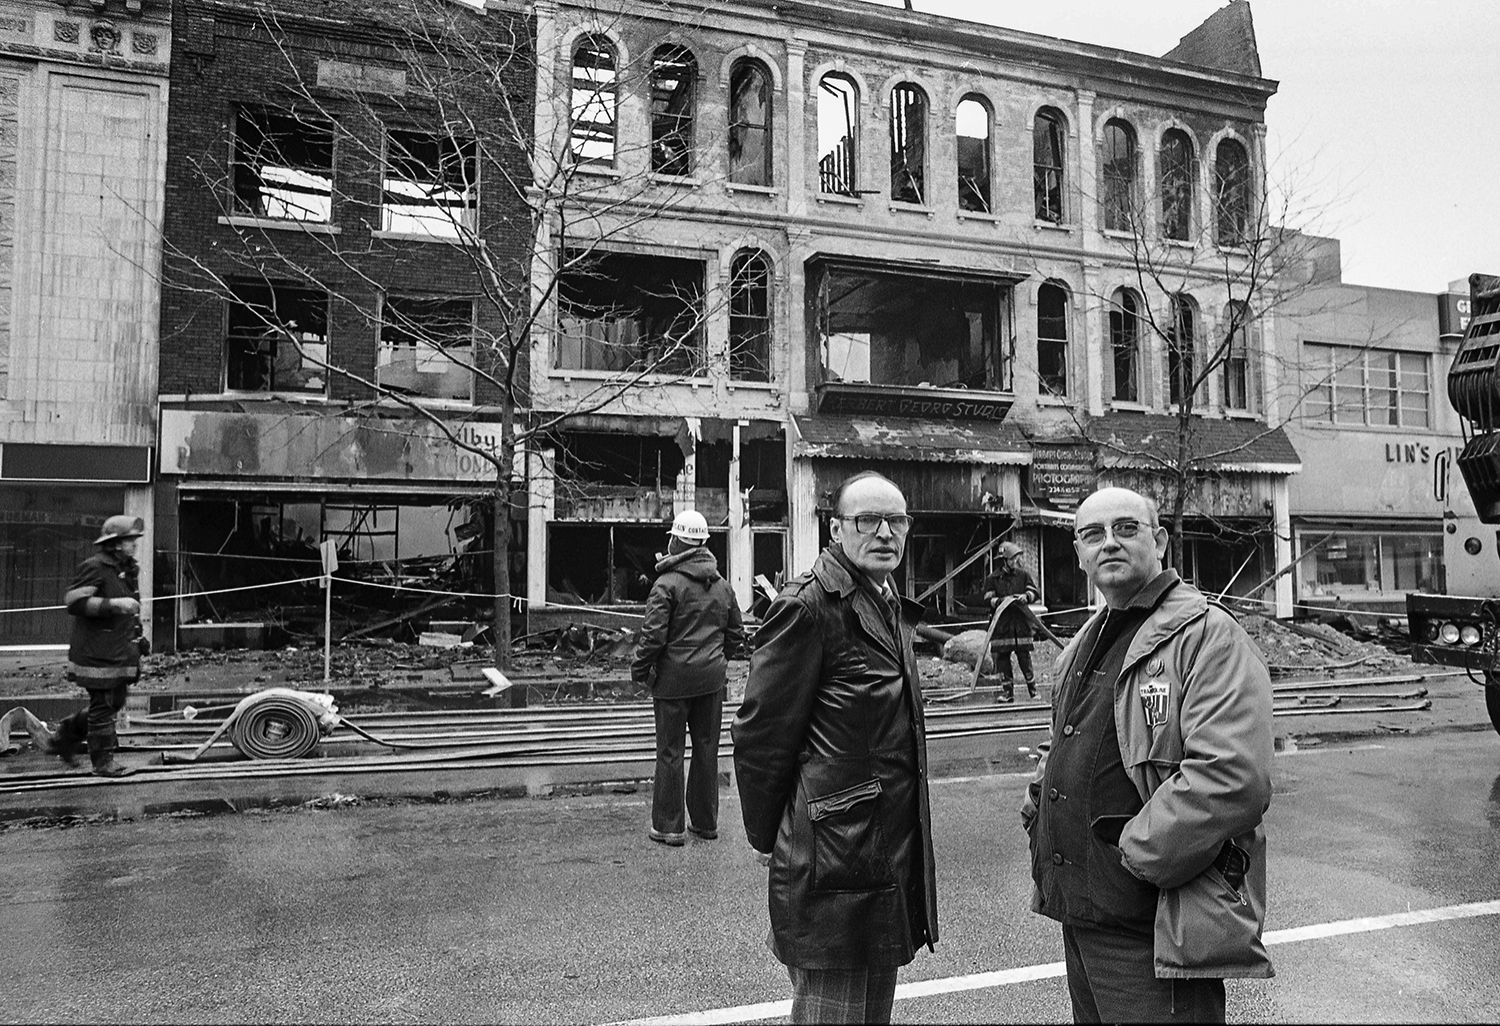 Fire destroys several downtown buildings at the intersection of Fifth and Monroe streets, including the Herbert Georg photography studio at 217 1/2 S. Fifth St., Feb. 19, 1980. The studio owners, Kenneth Carroll, left, and Don Ewing, at the scene of the fire. Photos by Chris Covatta and Bill Hagen (aftermath and cleanup) File/The State Journal-Register